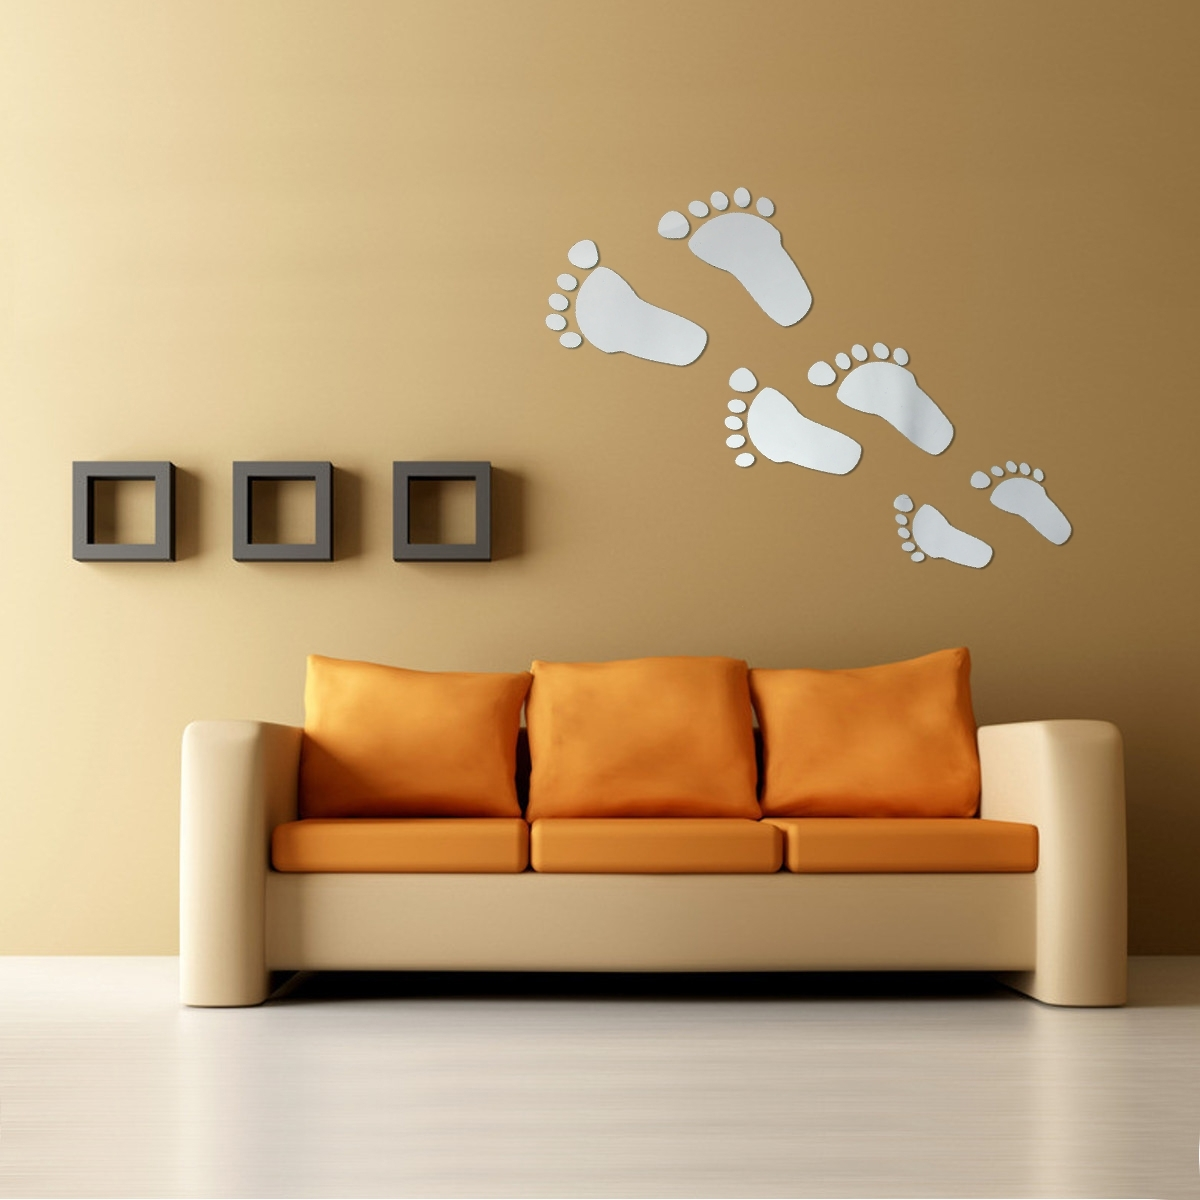 6Pcs Diy Footprint Acrylic Wall Sticker Fat Footprints Mirror Wall In 2017 Acrylic Wall Art (Gallery 13 of 20)